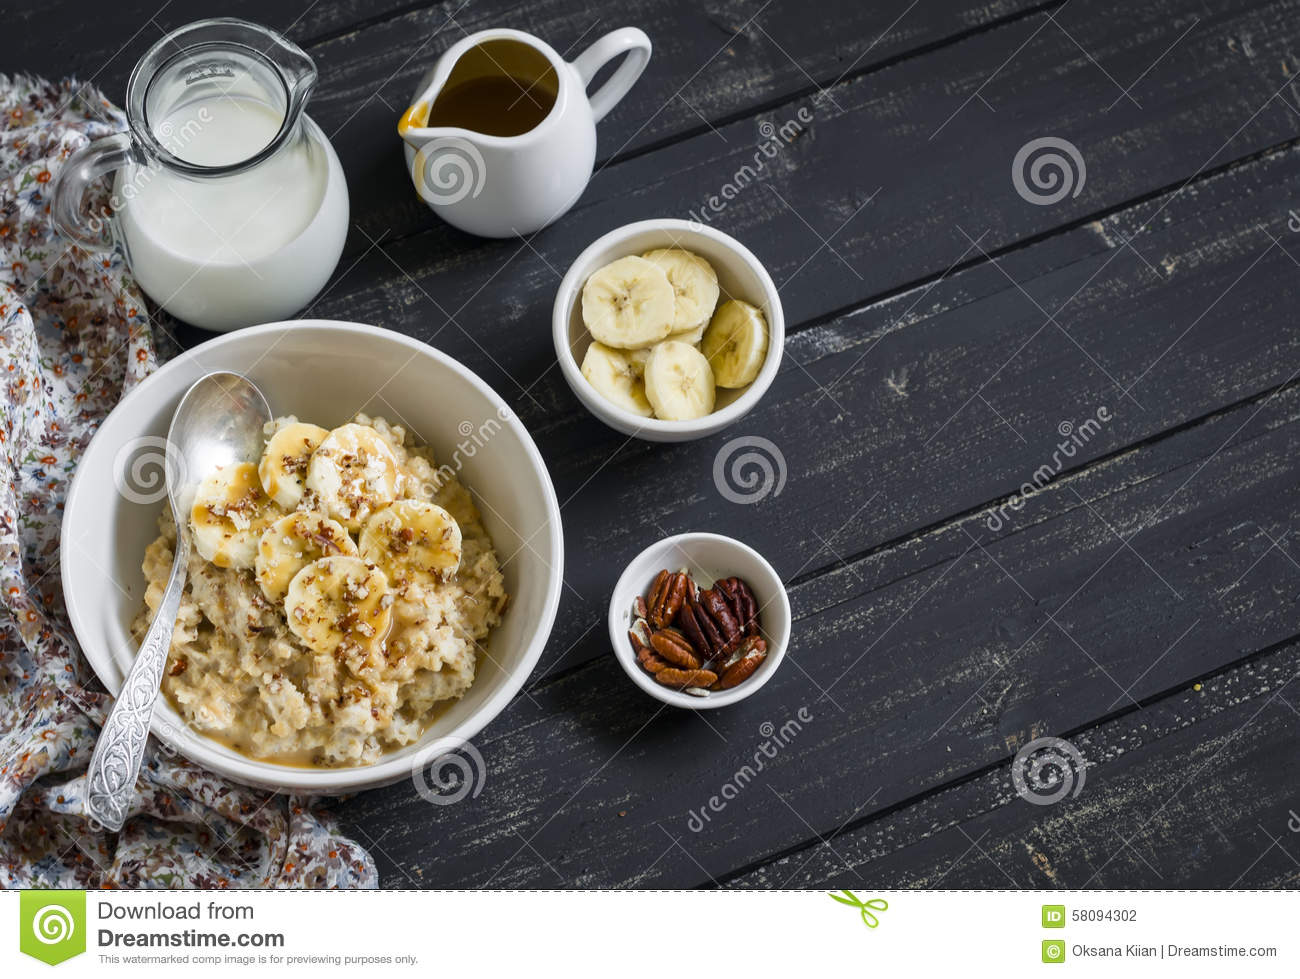 Oatmeal with banana, caramel sauce and pecan nuts in a white bowl on a dark wooden surface